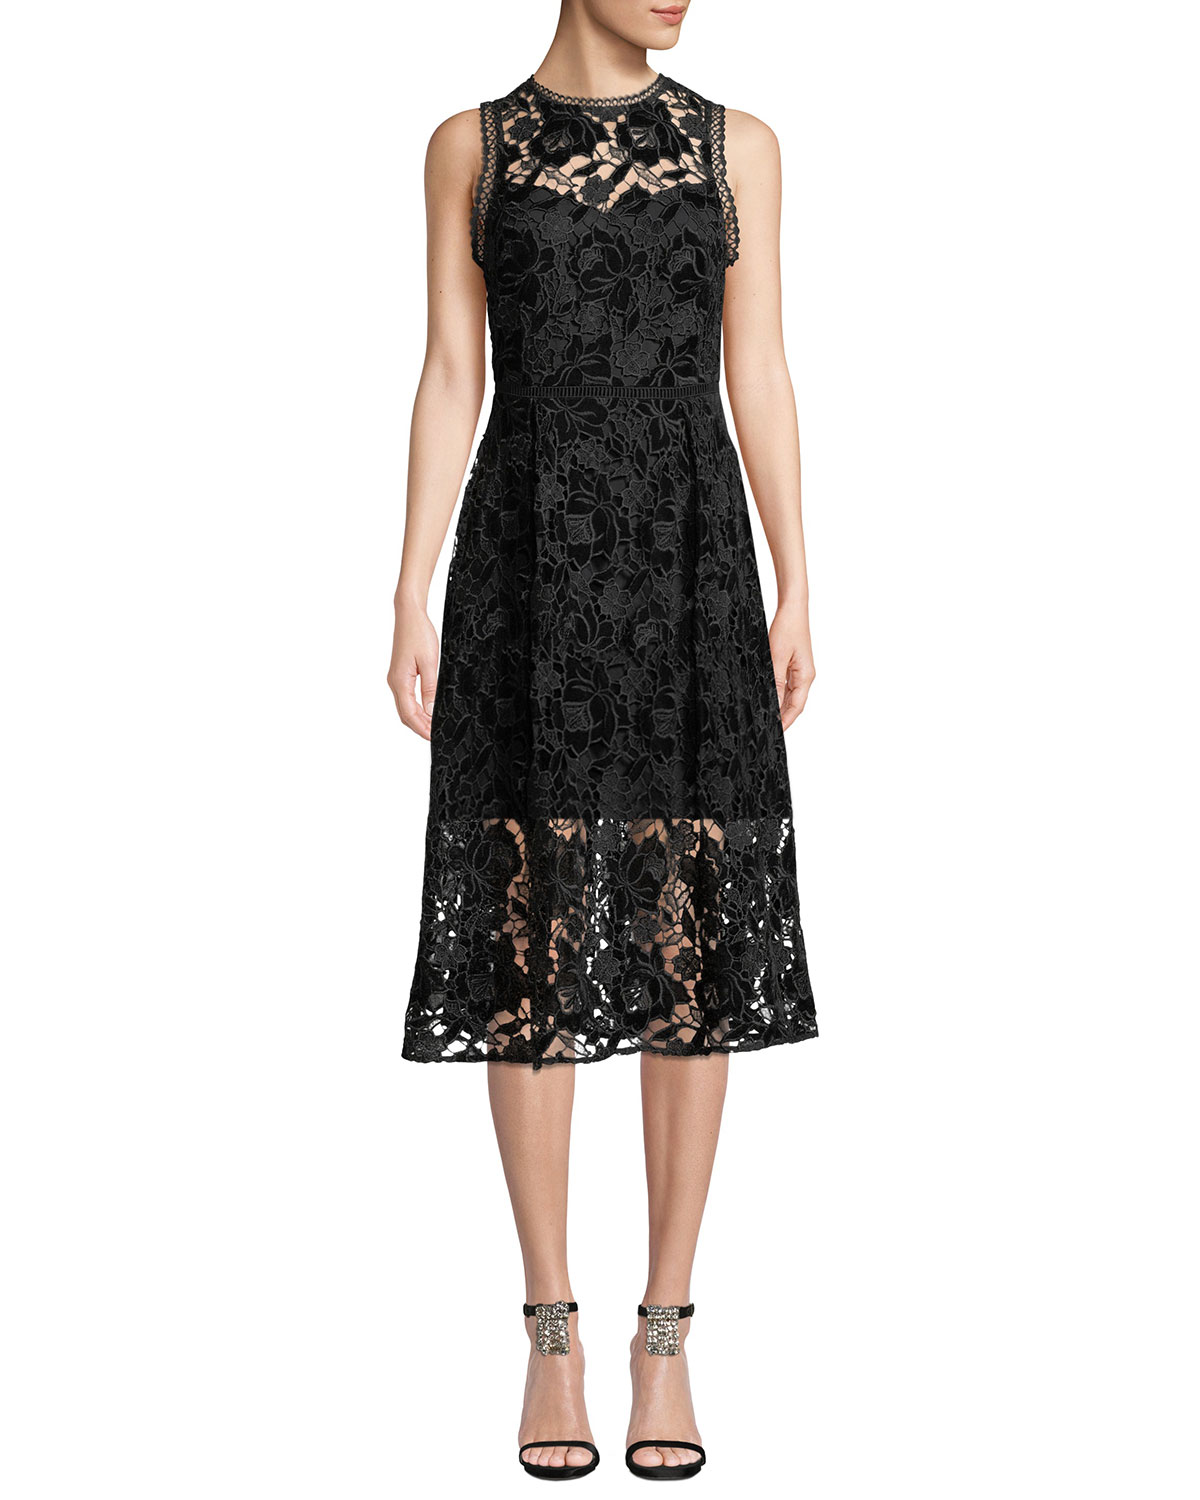 6074bbc854 Shoshanna Glengarry Velvet Floral Lace Sleeveless Dress | Neiman Marcus